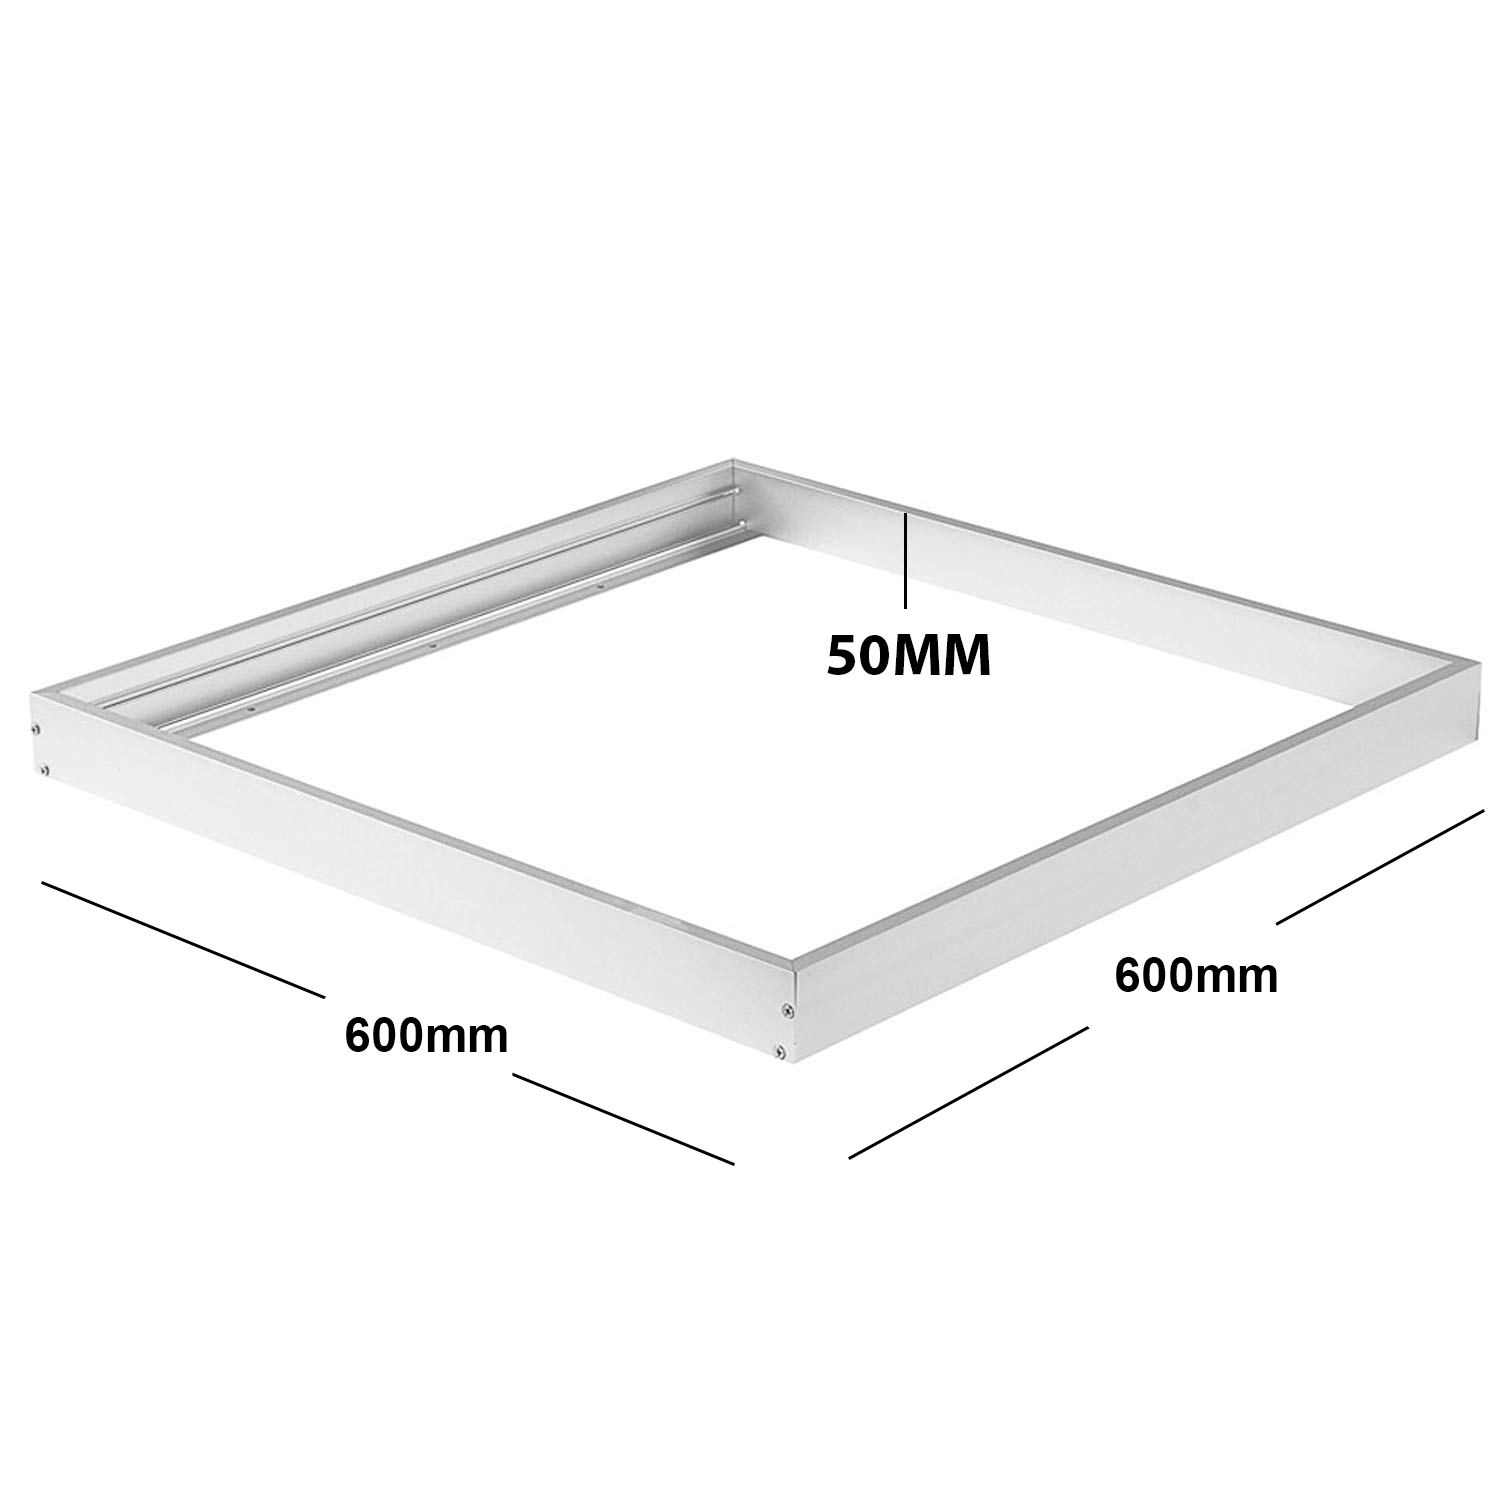 Ceiling light LED 48W recessed lamp light ceiling 60x60 cm 4500lm square 220V